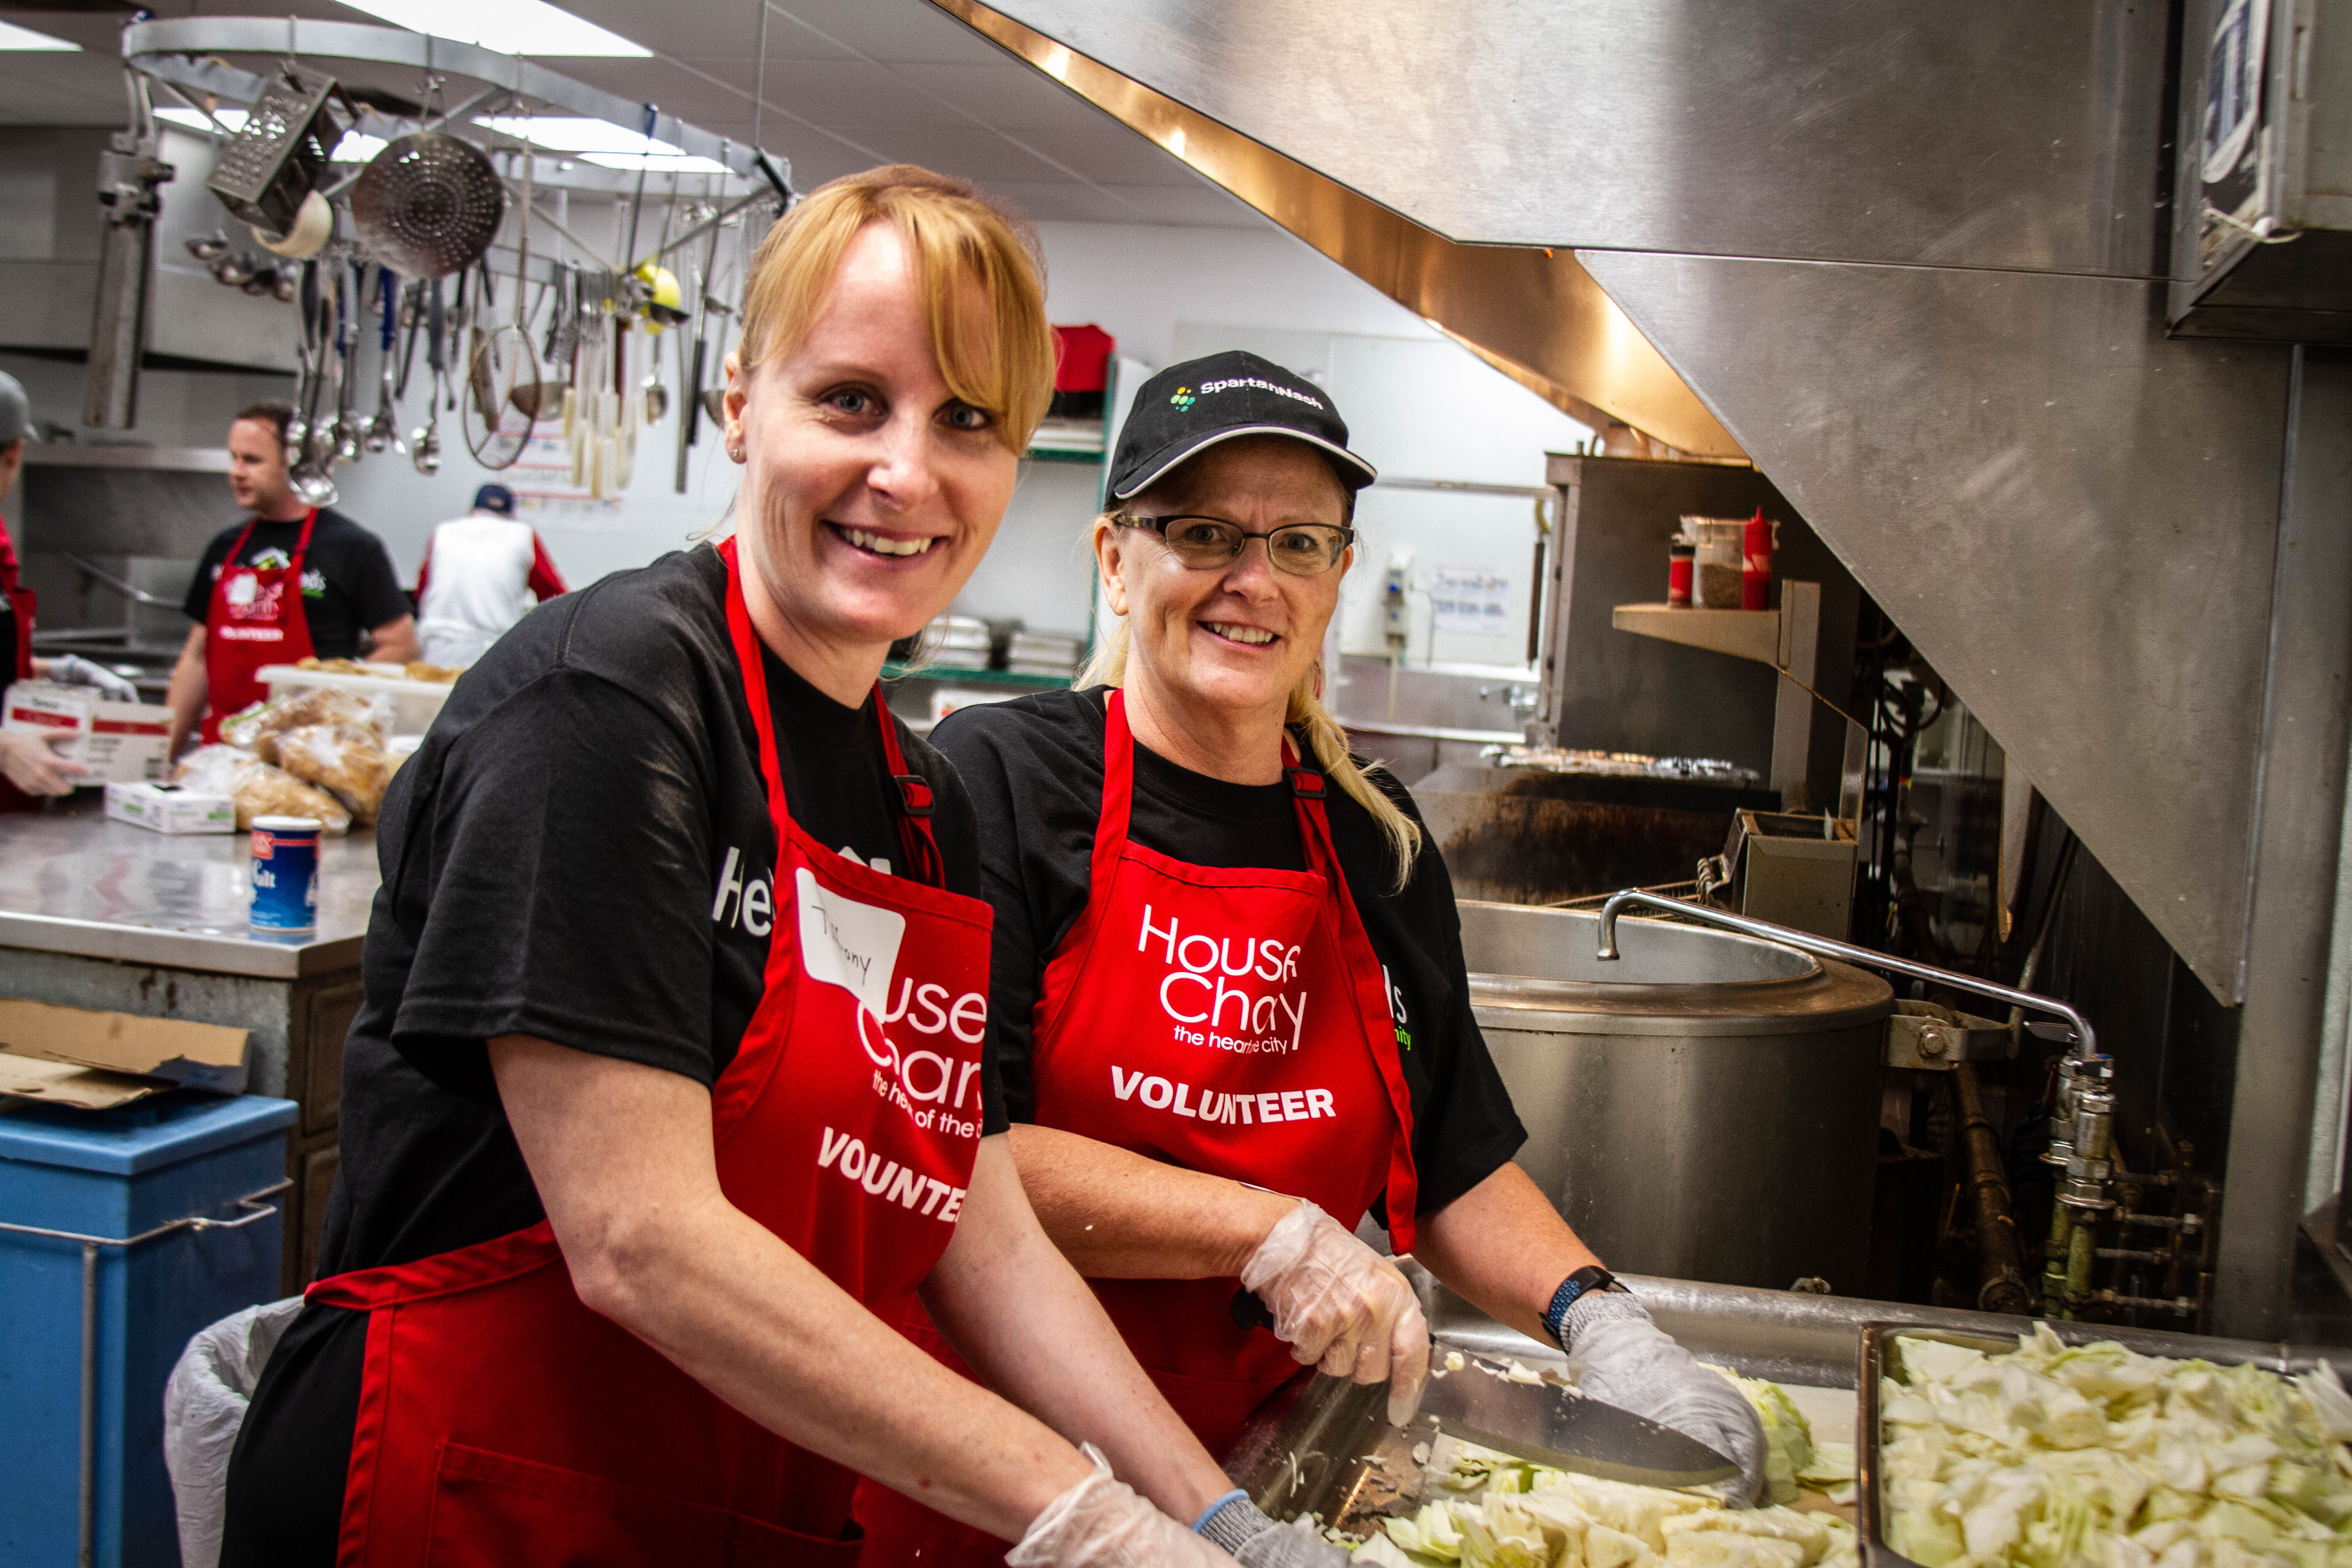 Free Public Meals - House of Charity